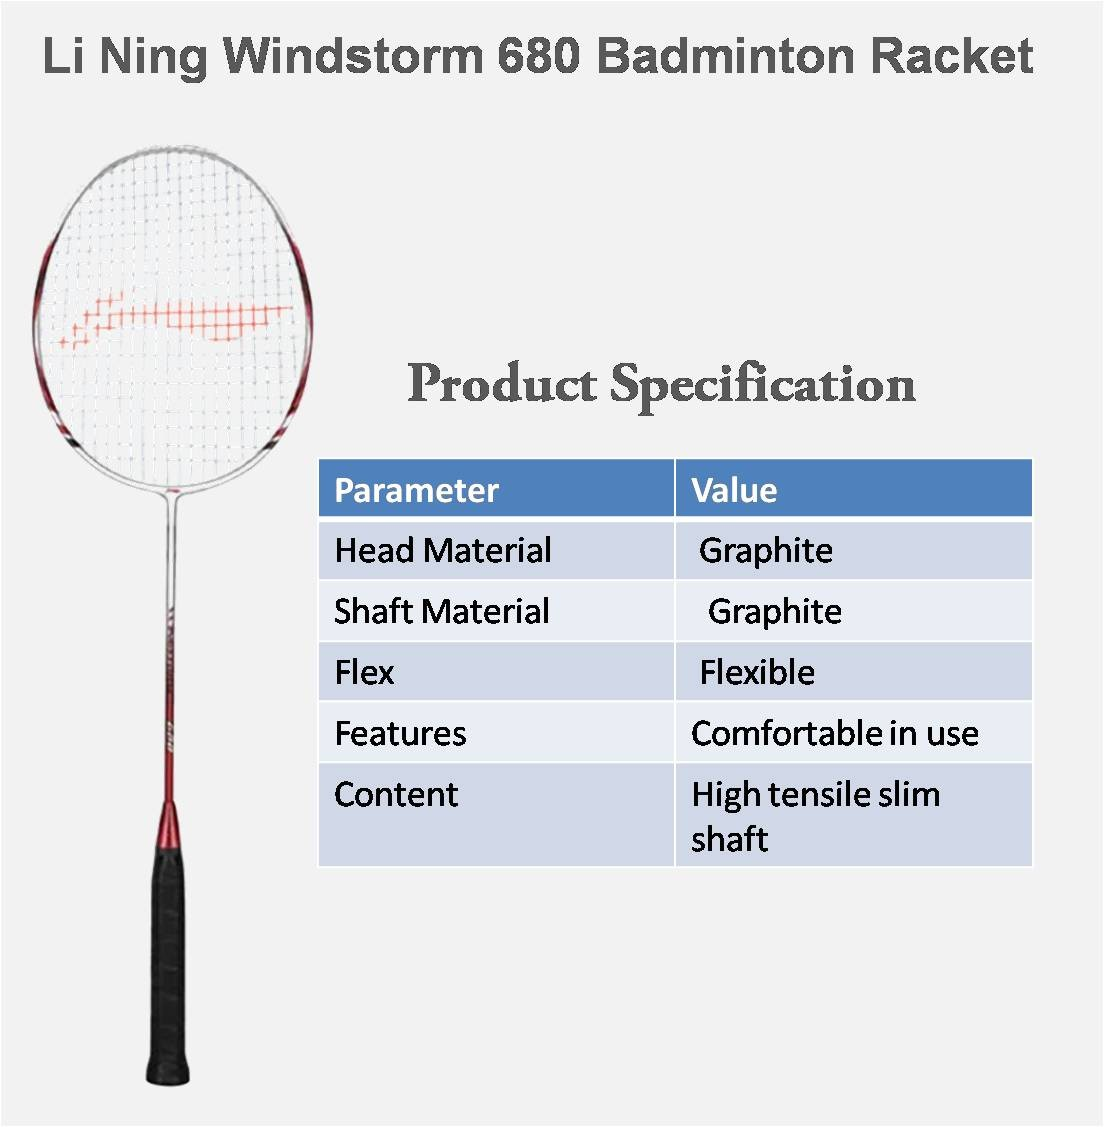 Li Ning WindStorm 680 Badminton Racket